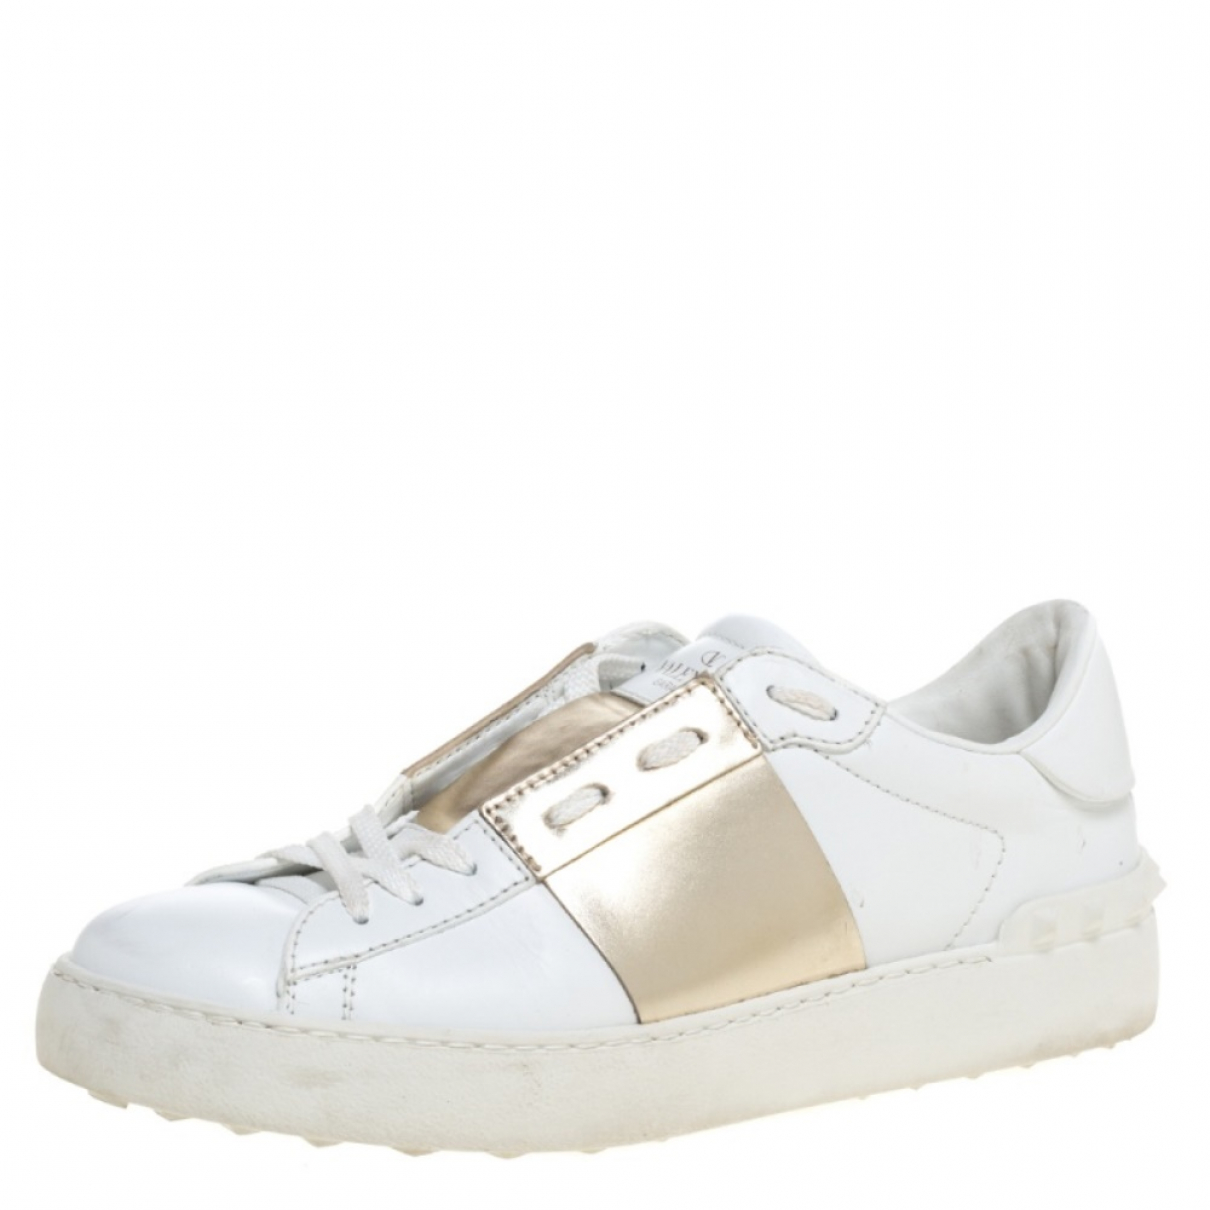 Autre Marque N White Leather Trainers for Women 7 US